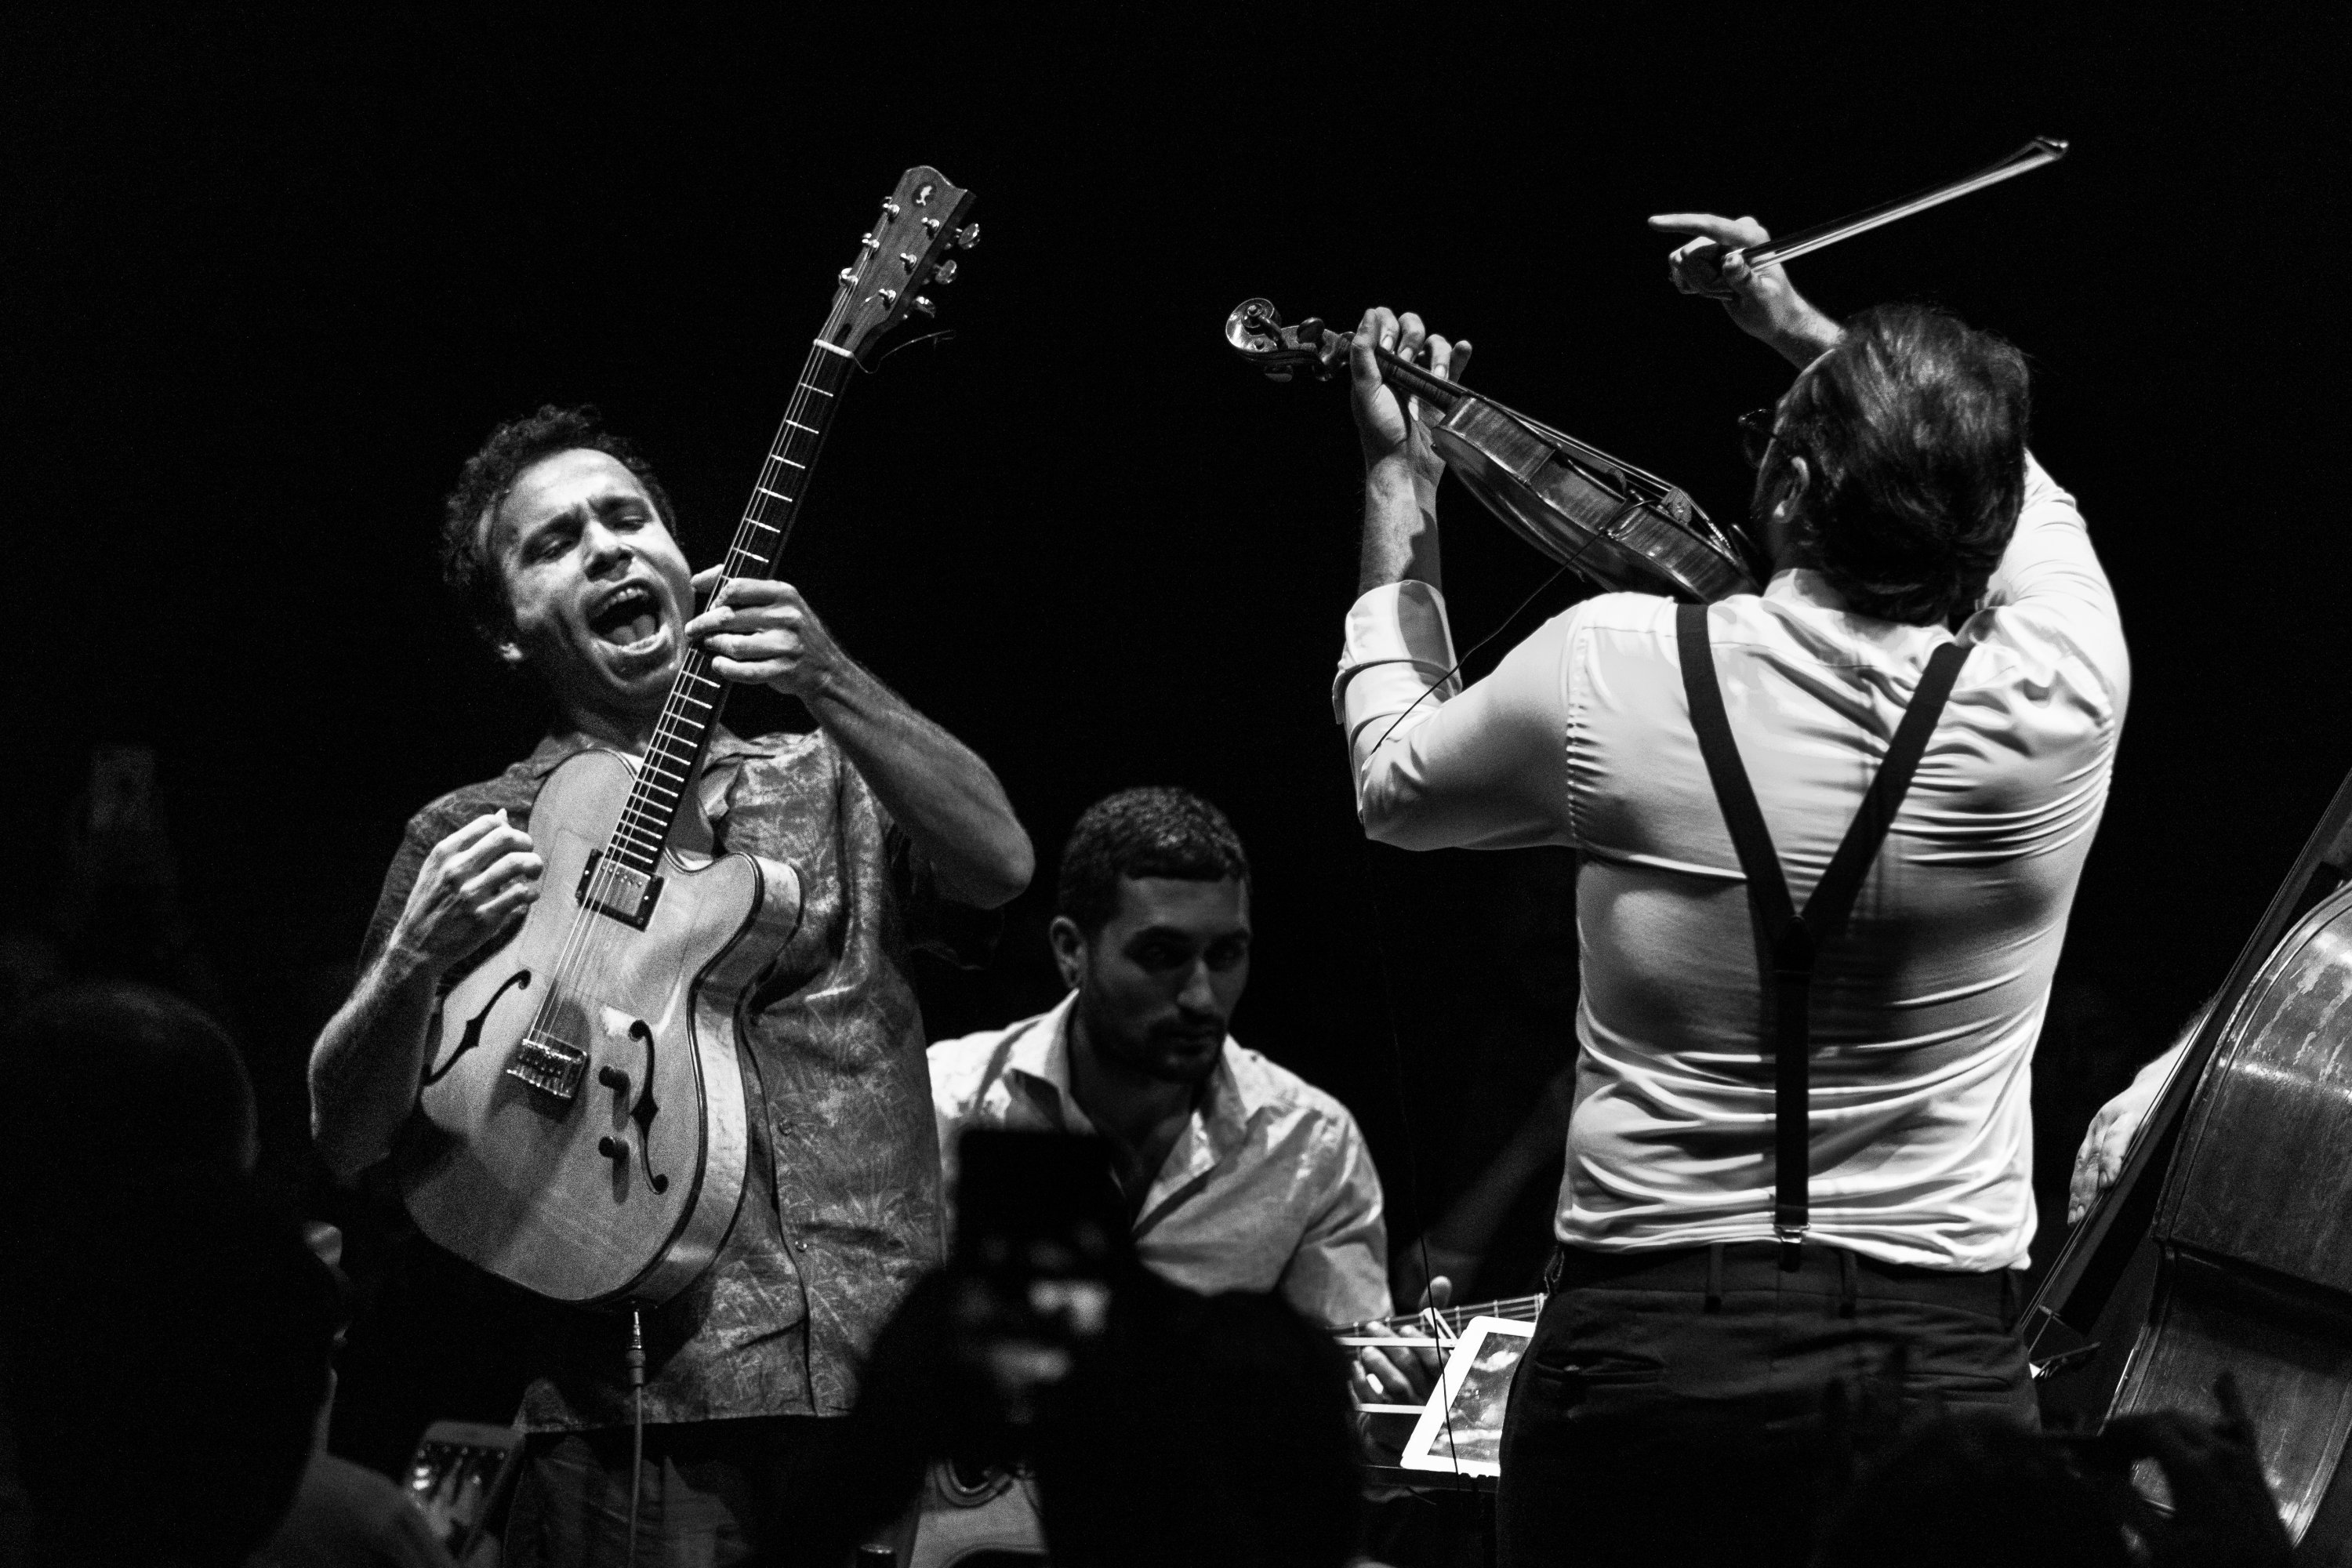 MANOUCHE A LA TURCA, led by Bilal Karaman, will be on stage on Sept. 11 with French Gypsy jazz melodies. (Courtesy of IKSV)